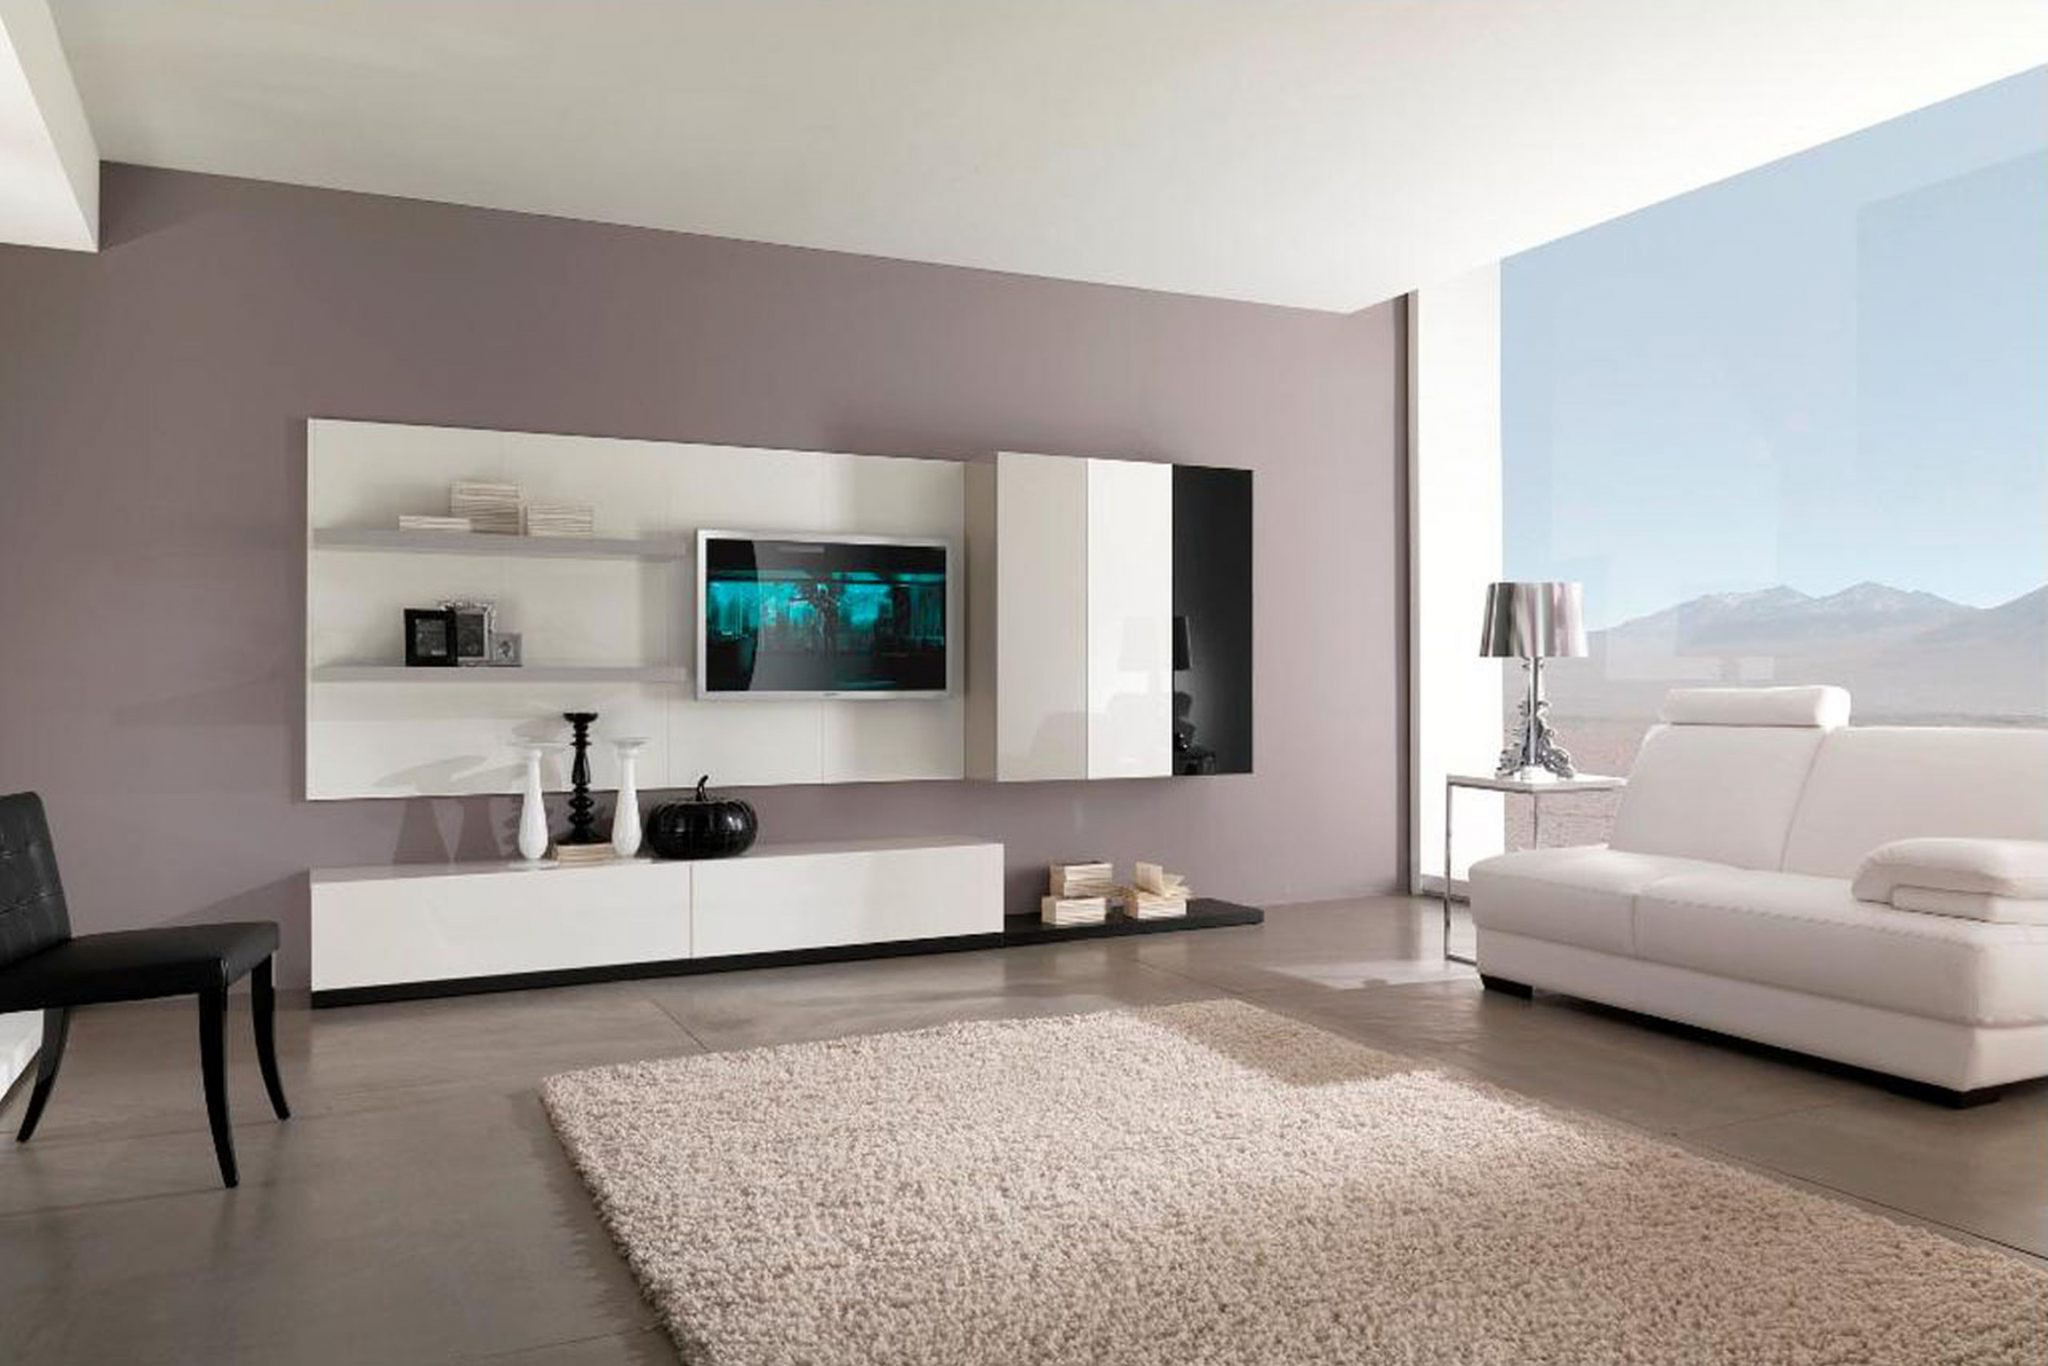 Best ideas about Modern Paint Colors . Save or Pin Paint Ideas for Living Room with Narrow Space TheyDesign Now.